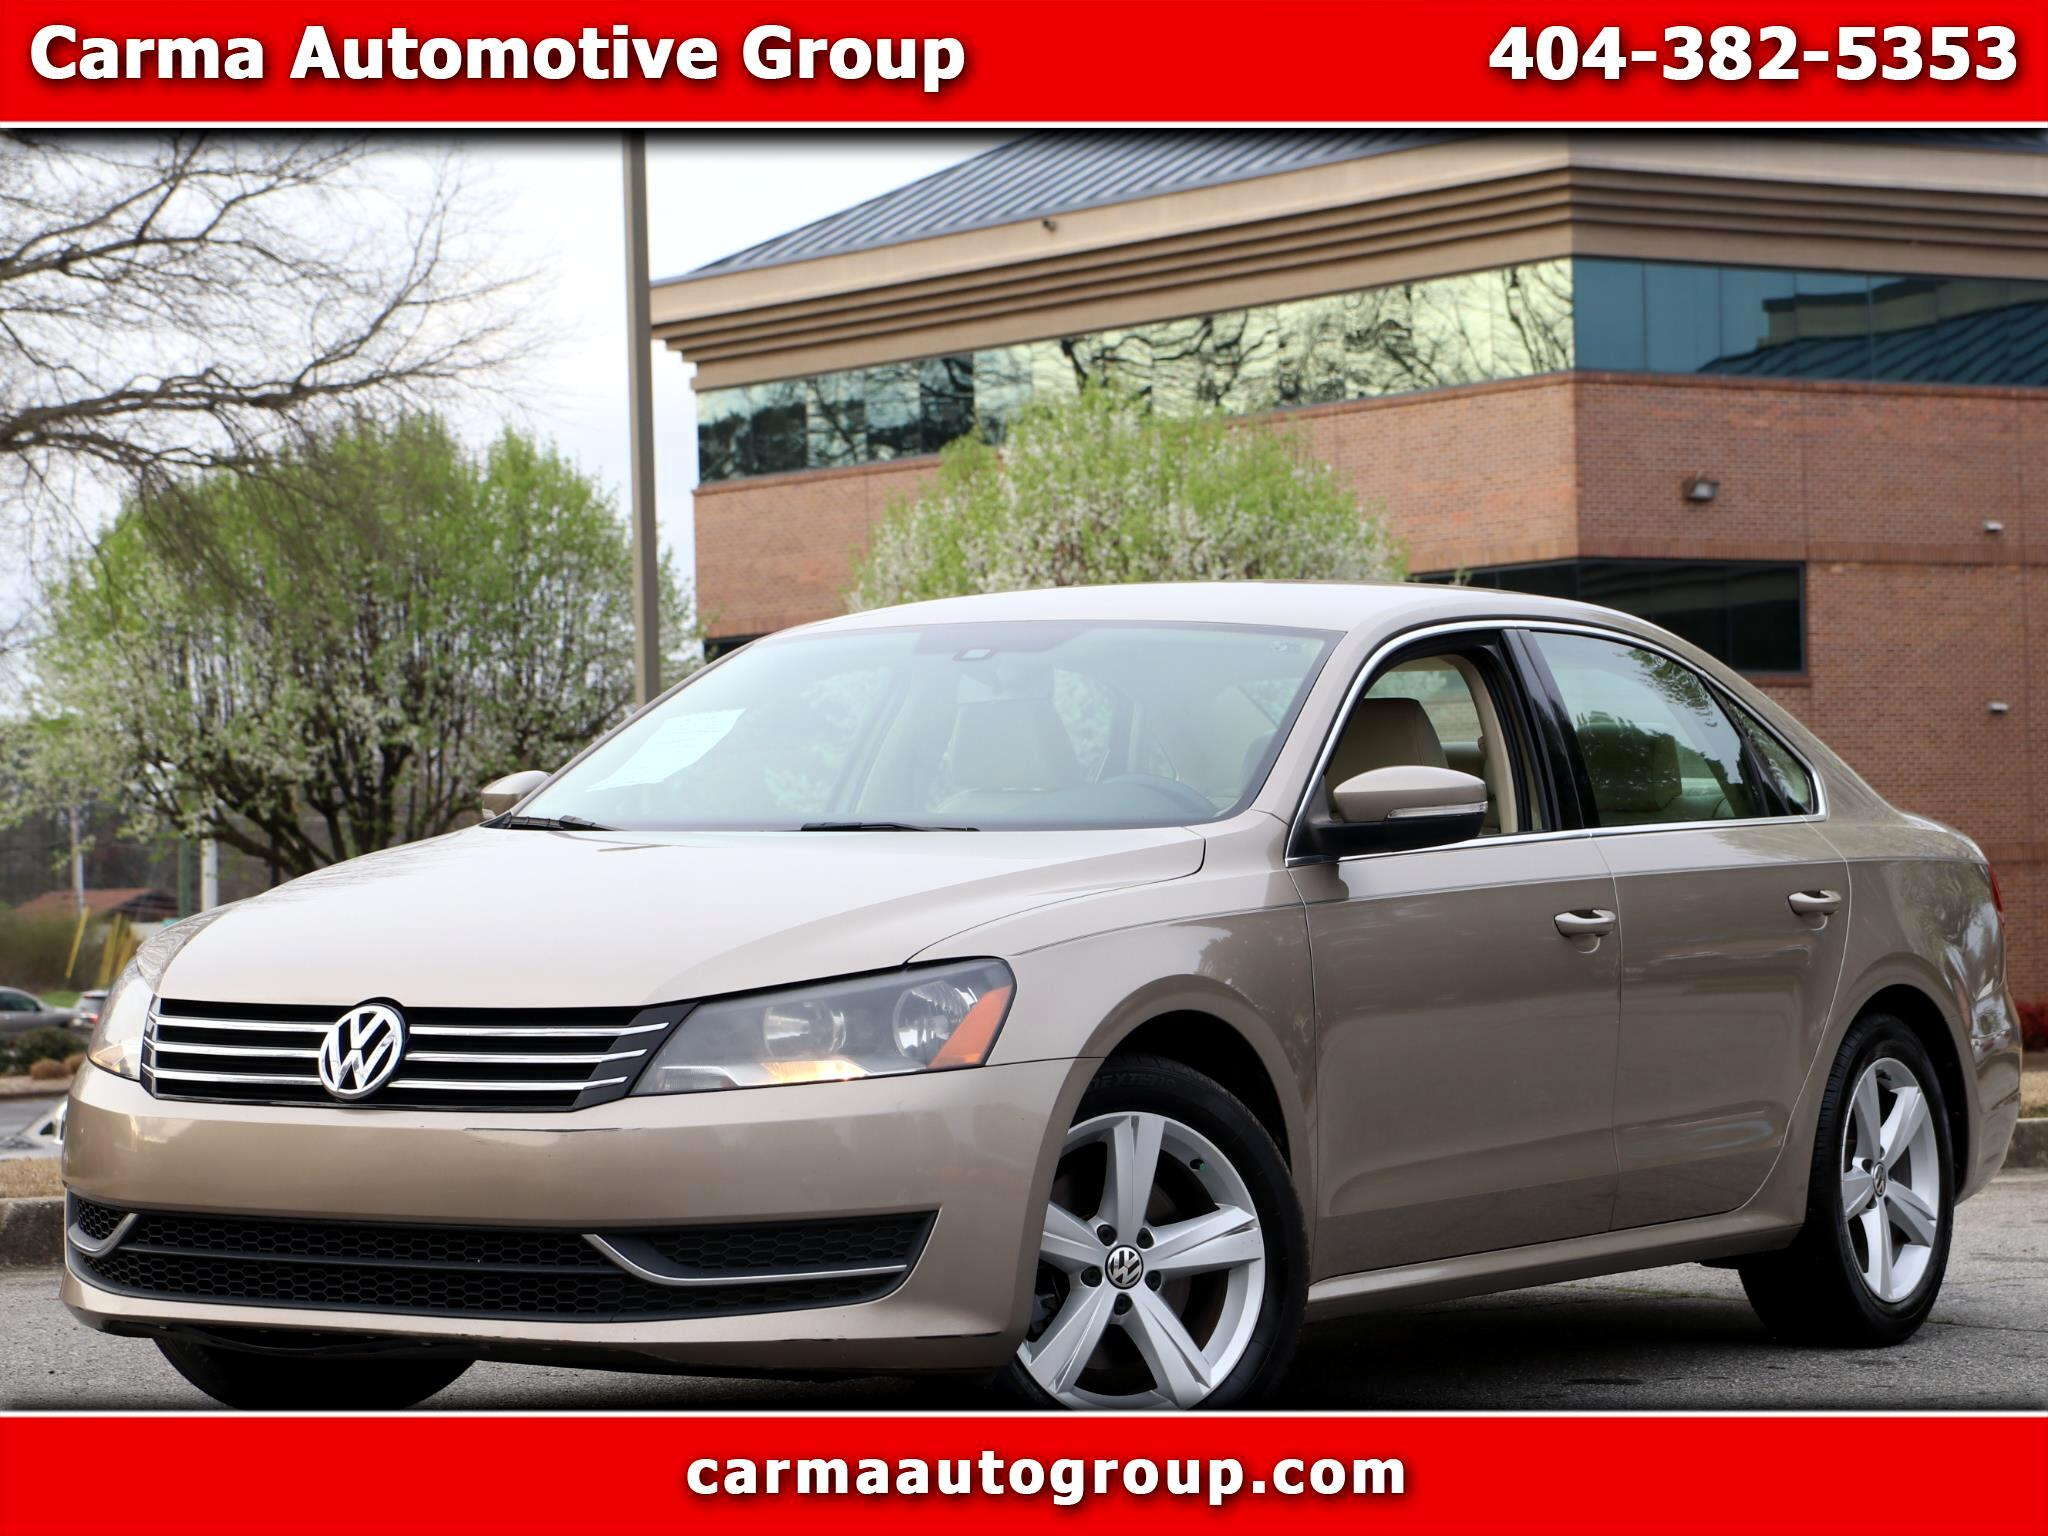 Used 2015 Volkswagen Passat Se For Sale In Duluth Ga 30096 Carma Automotive Group